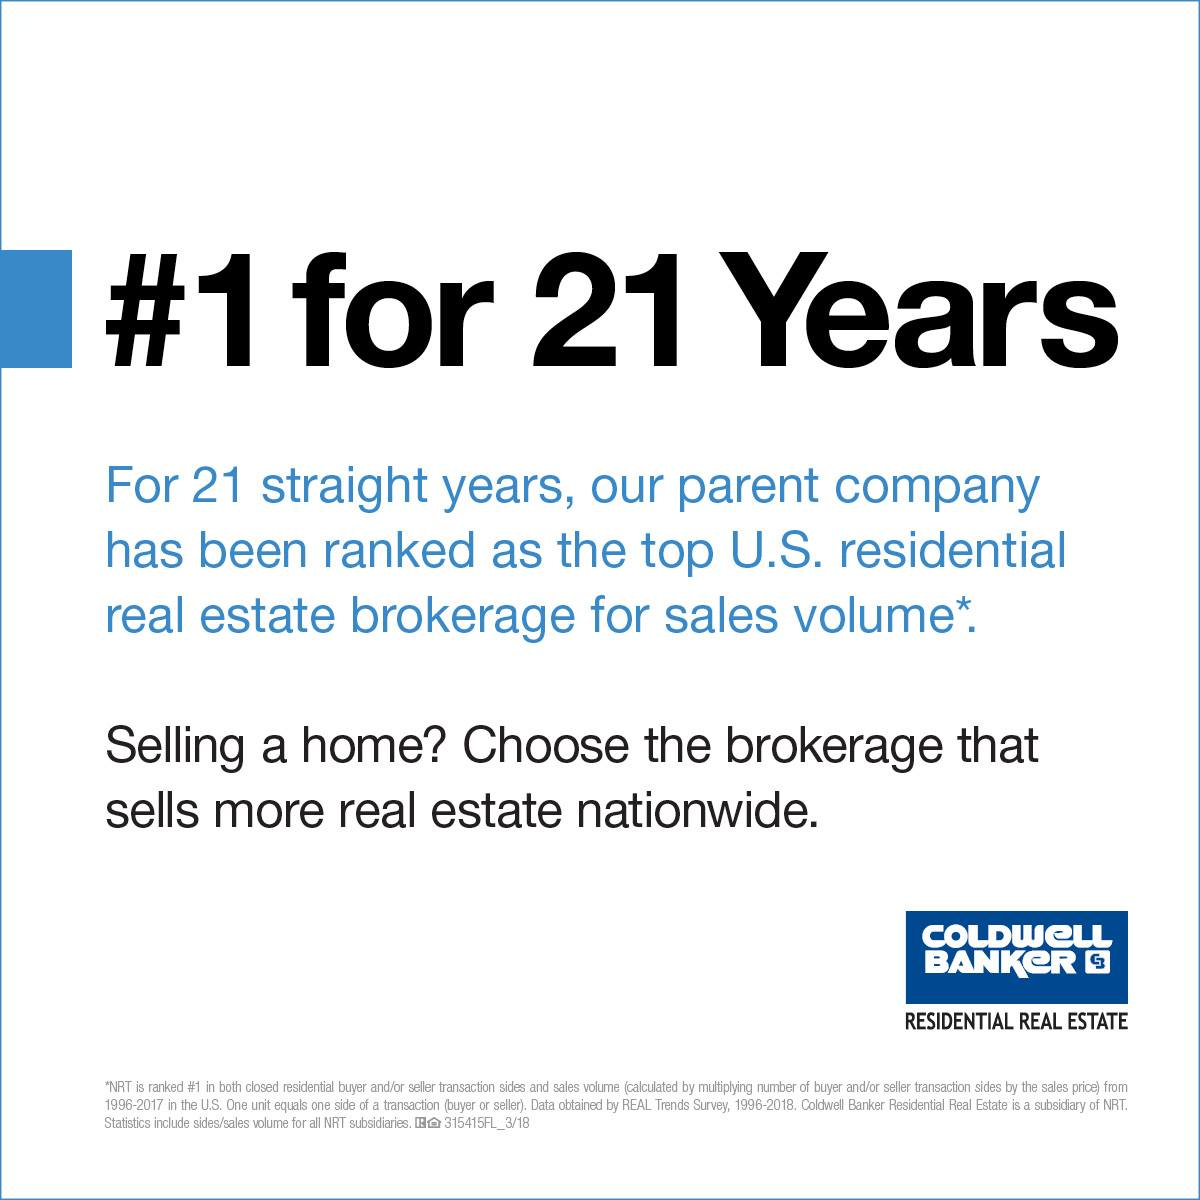 #1 for 21 Years